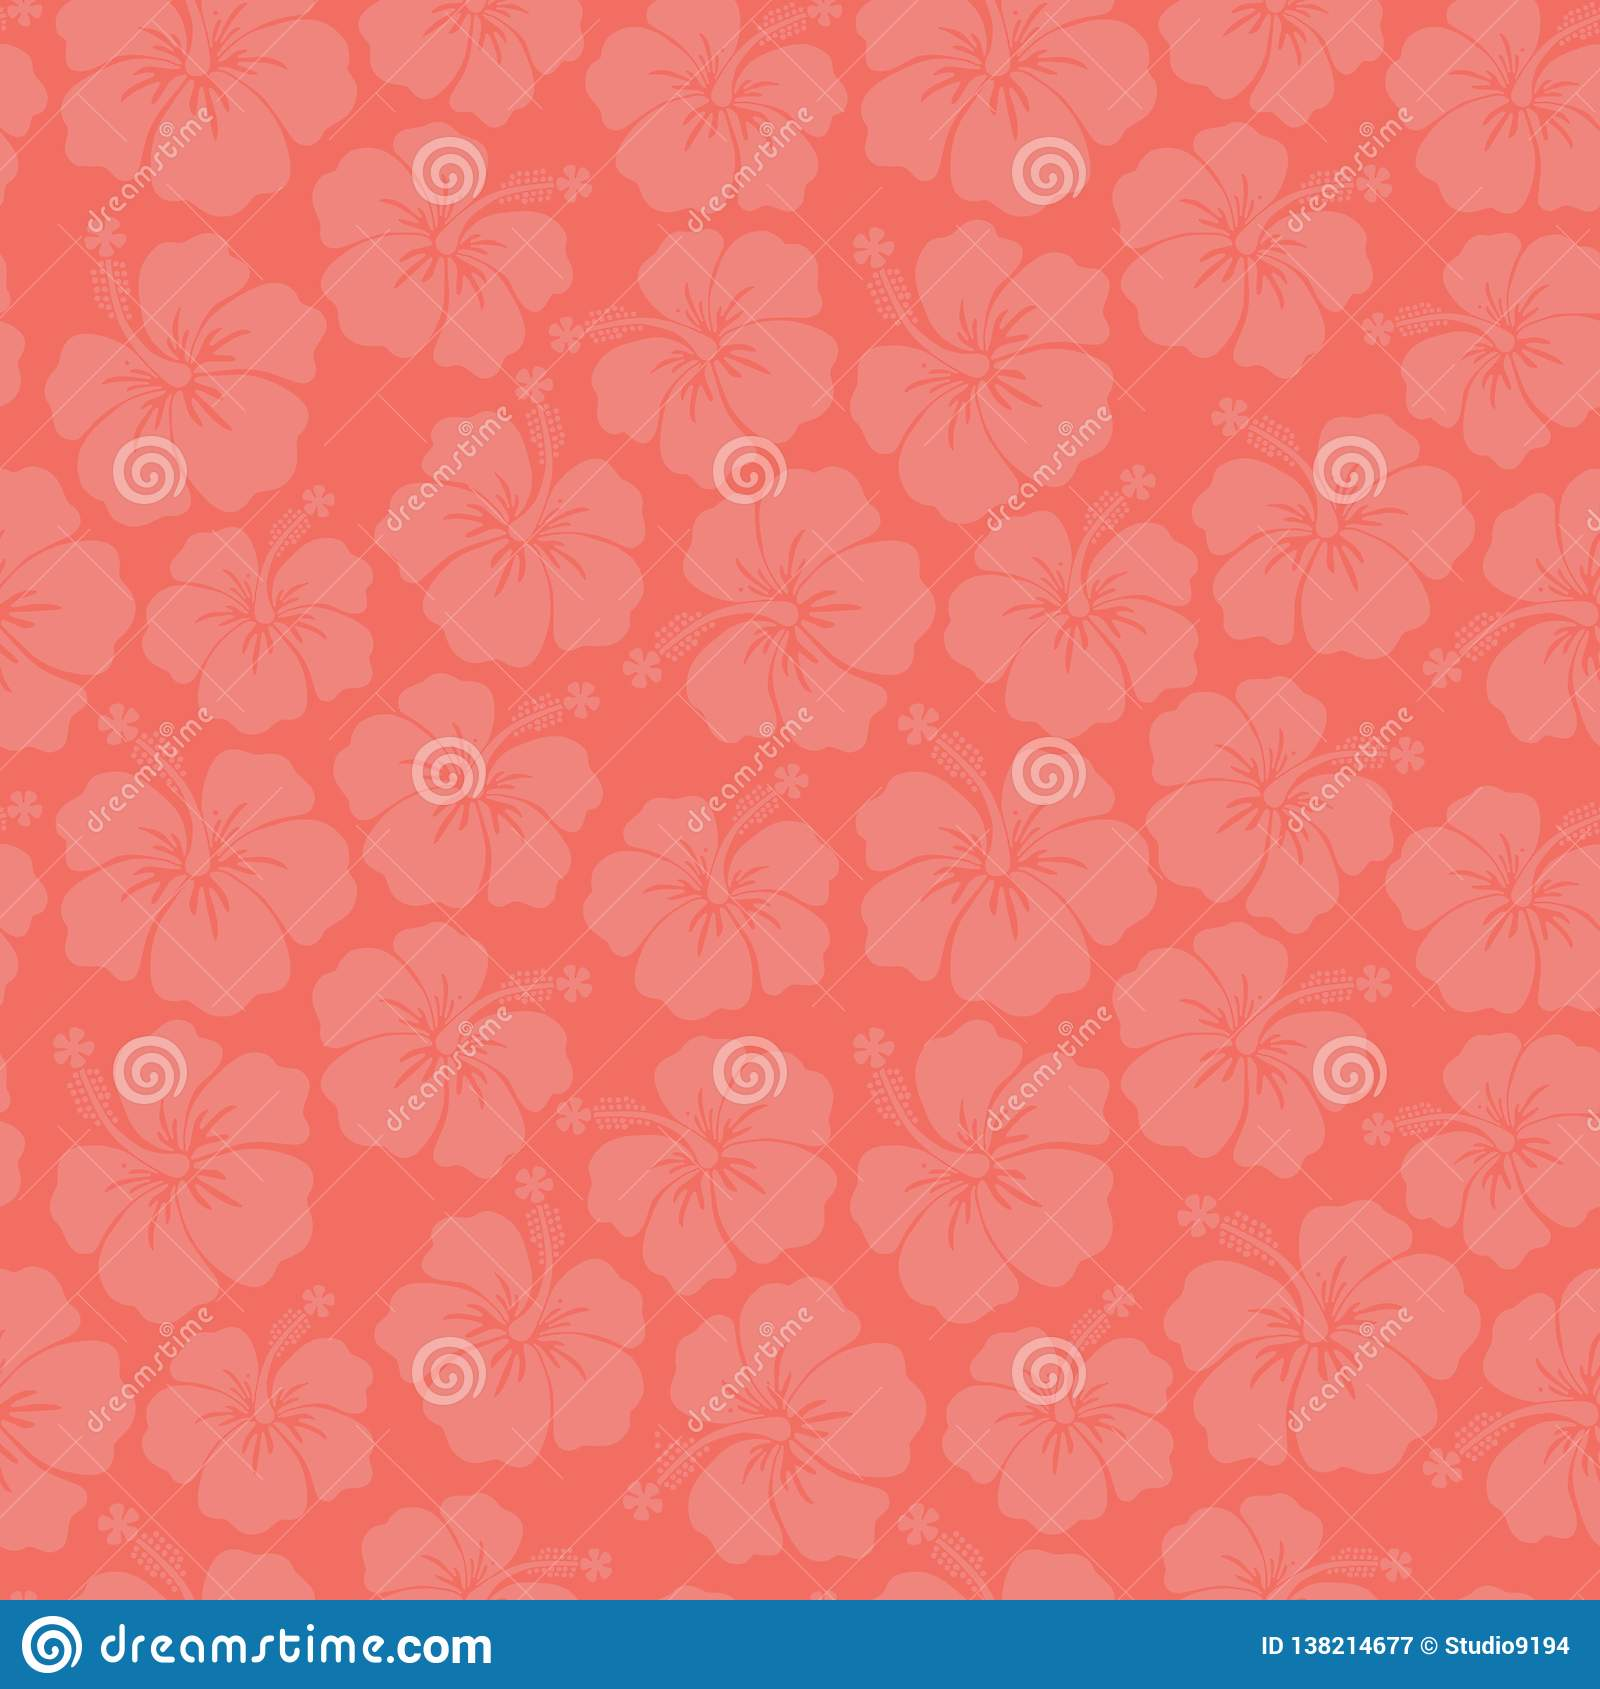 Subtle Floral Background Coral Hibiscus Flowers Seamless Vector